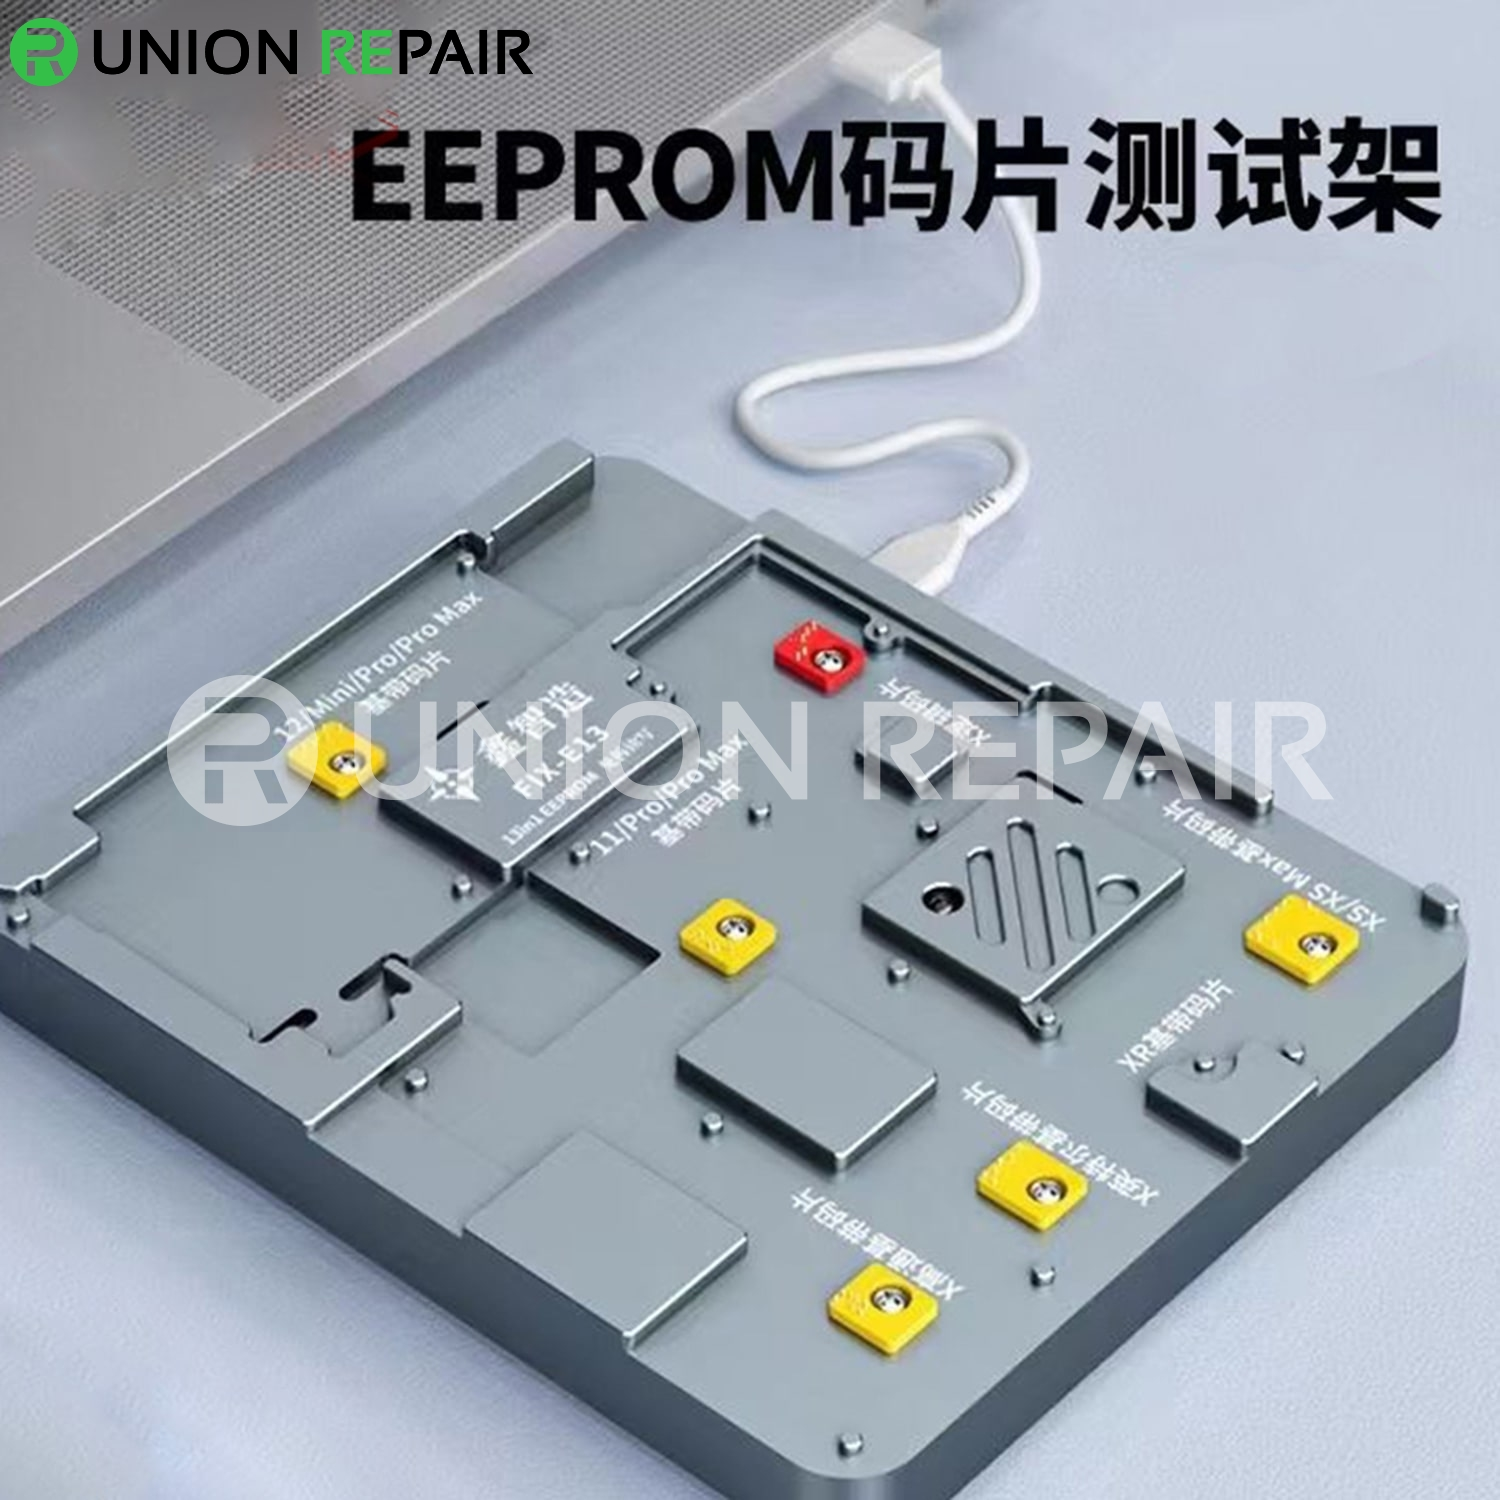 Fix-E13 Baseband EEPROM Chip Non-removal Read/Write Programmer for iPhone X-12ProMax